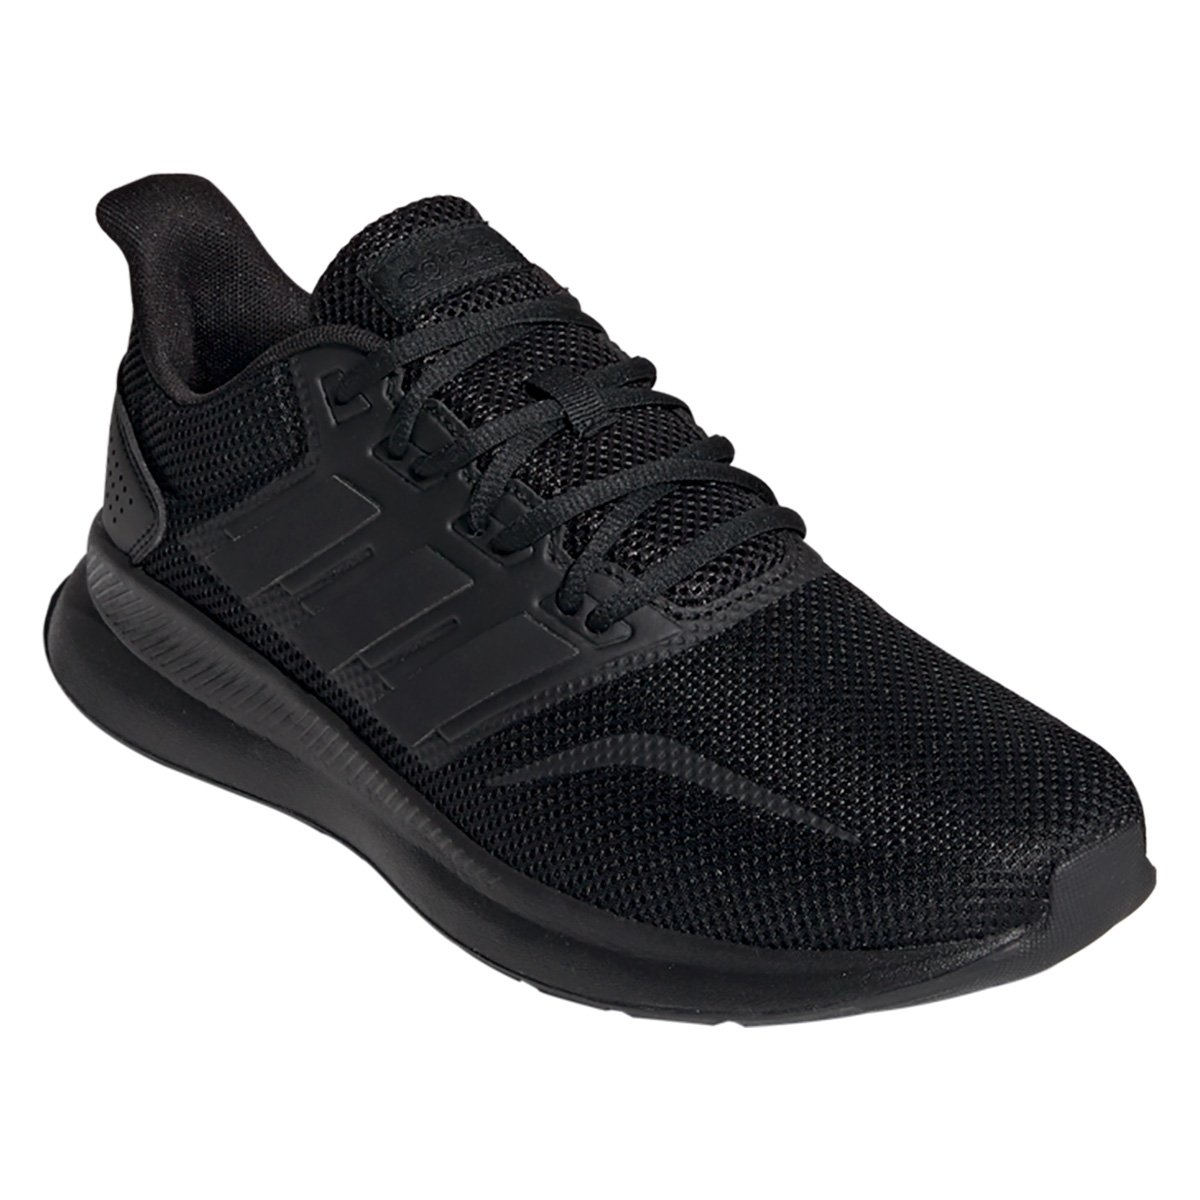 new release new collection fashion Tênis Adidas Run Falcon Masculino - Preto